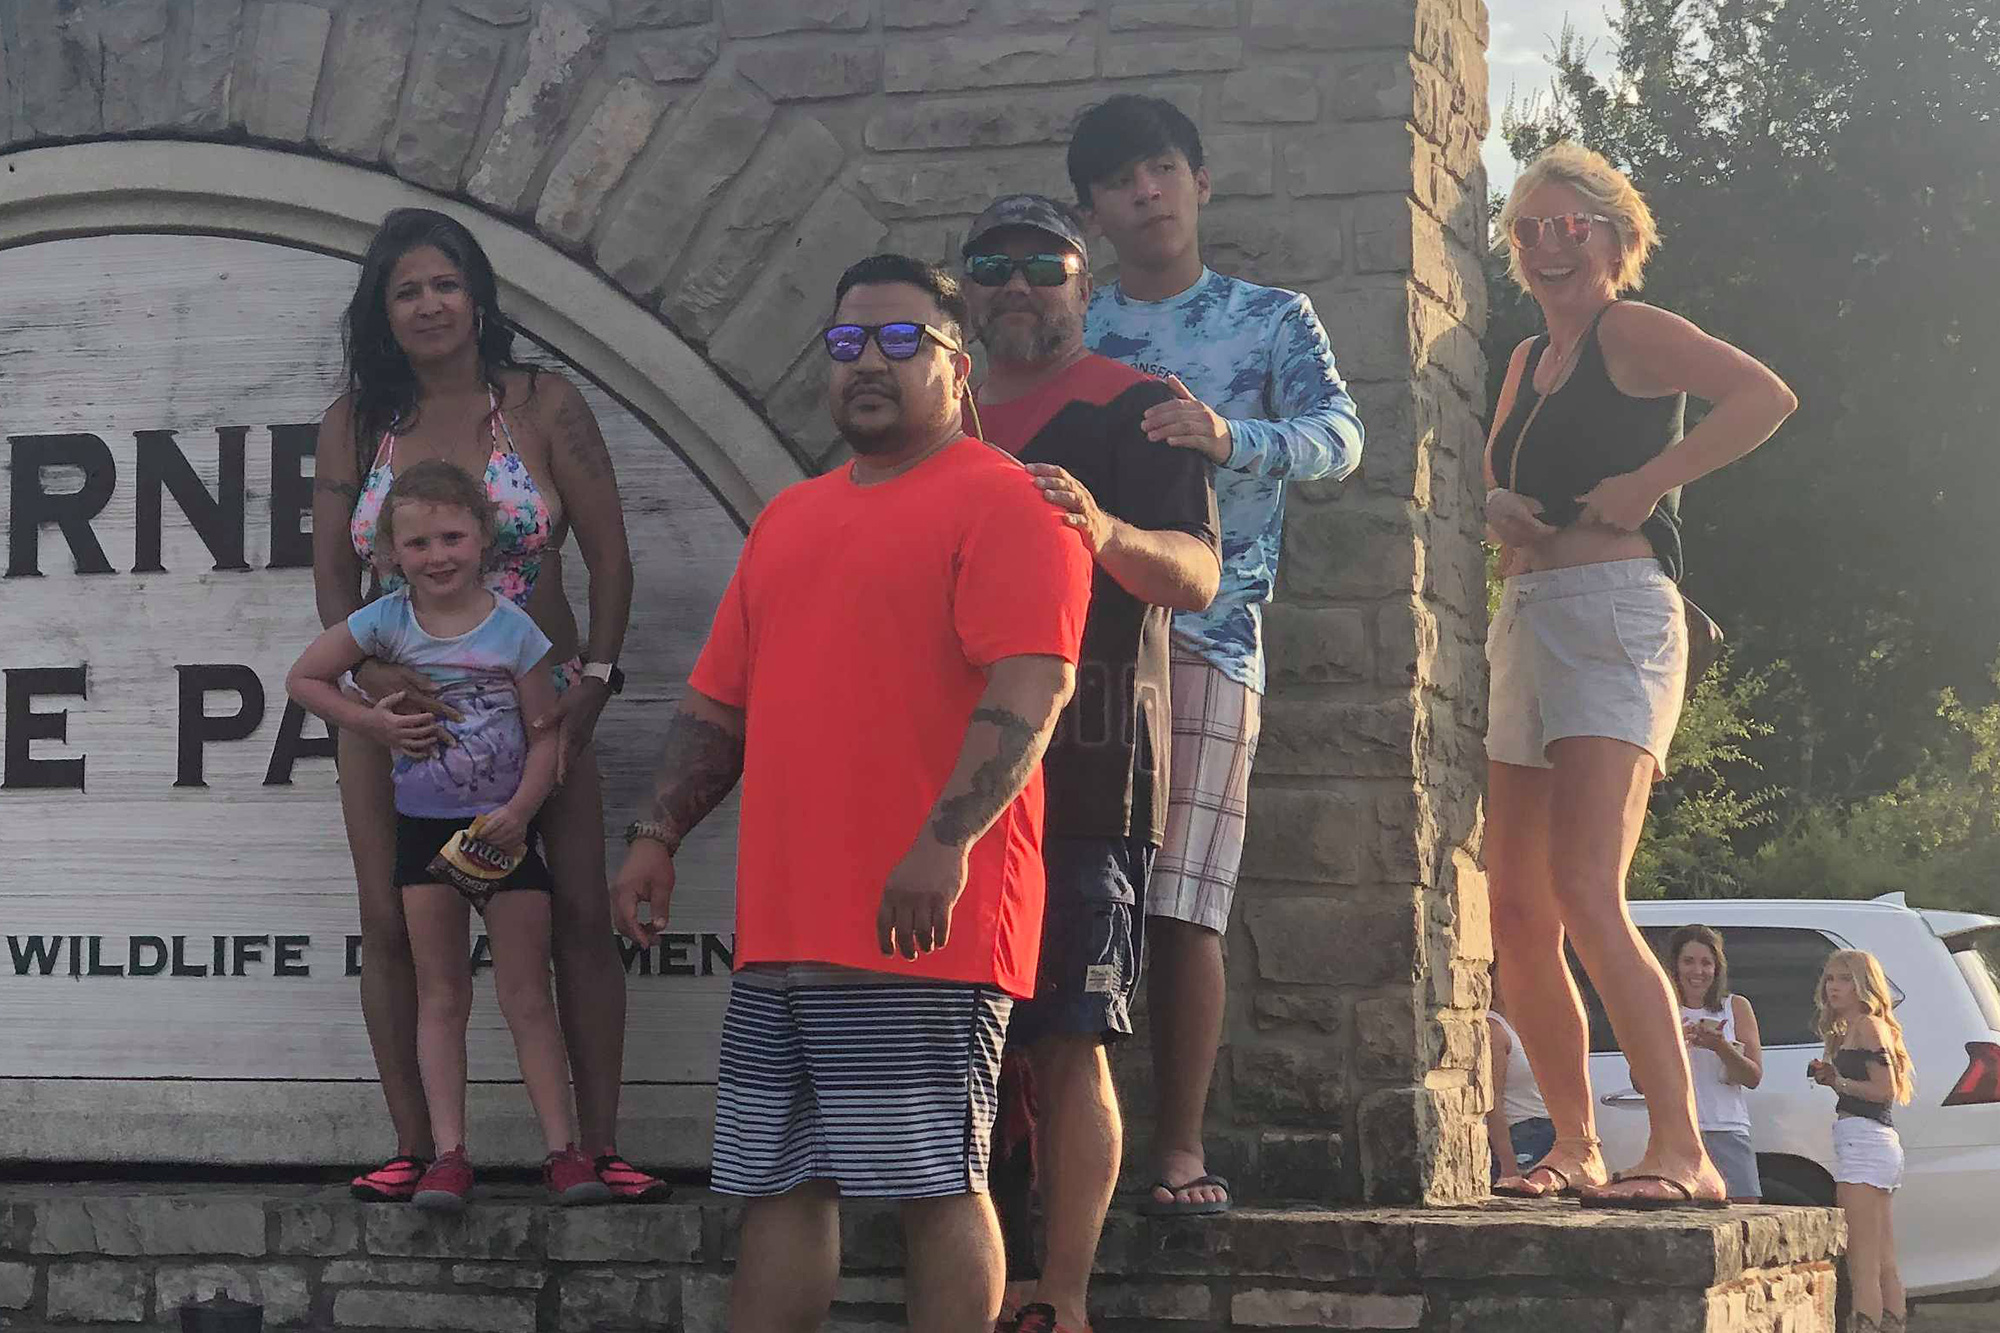 Brown shirt white shorts big tits popup ads Topless Woman Photobombs Family S Vacation Pics